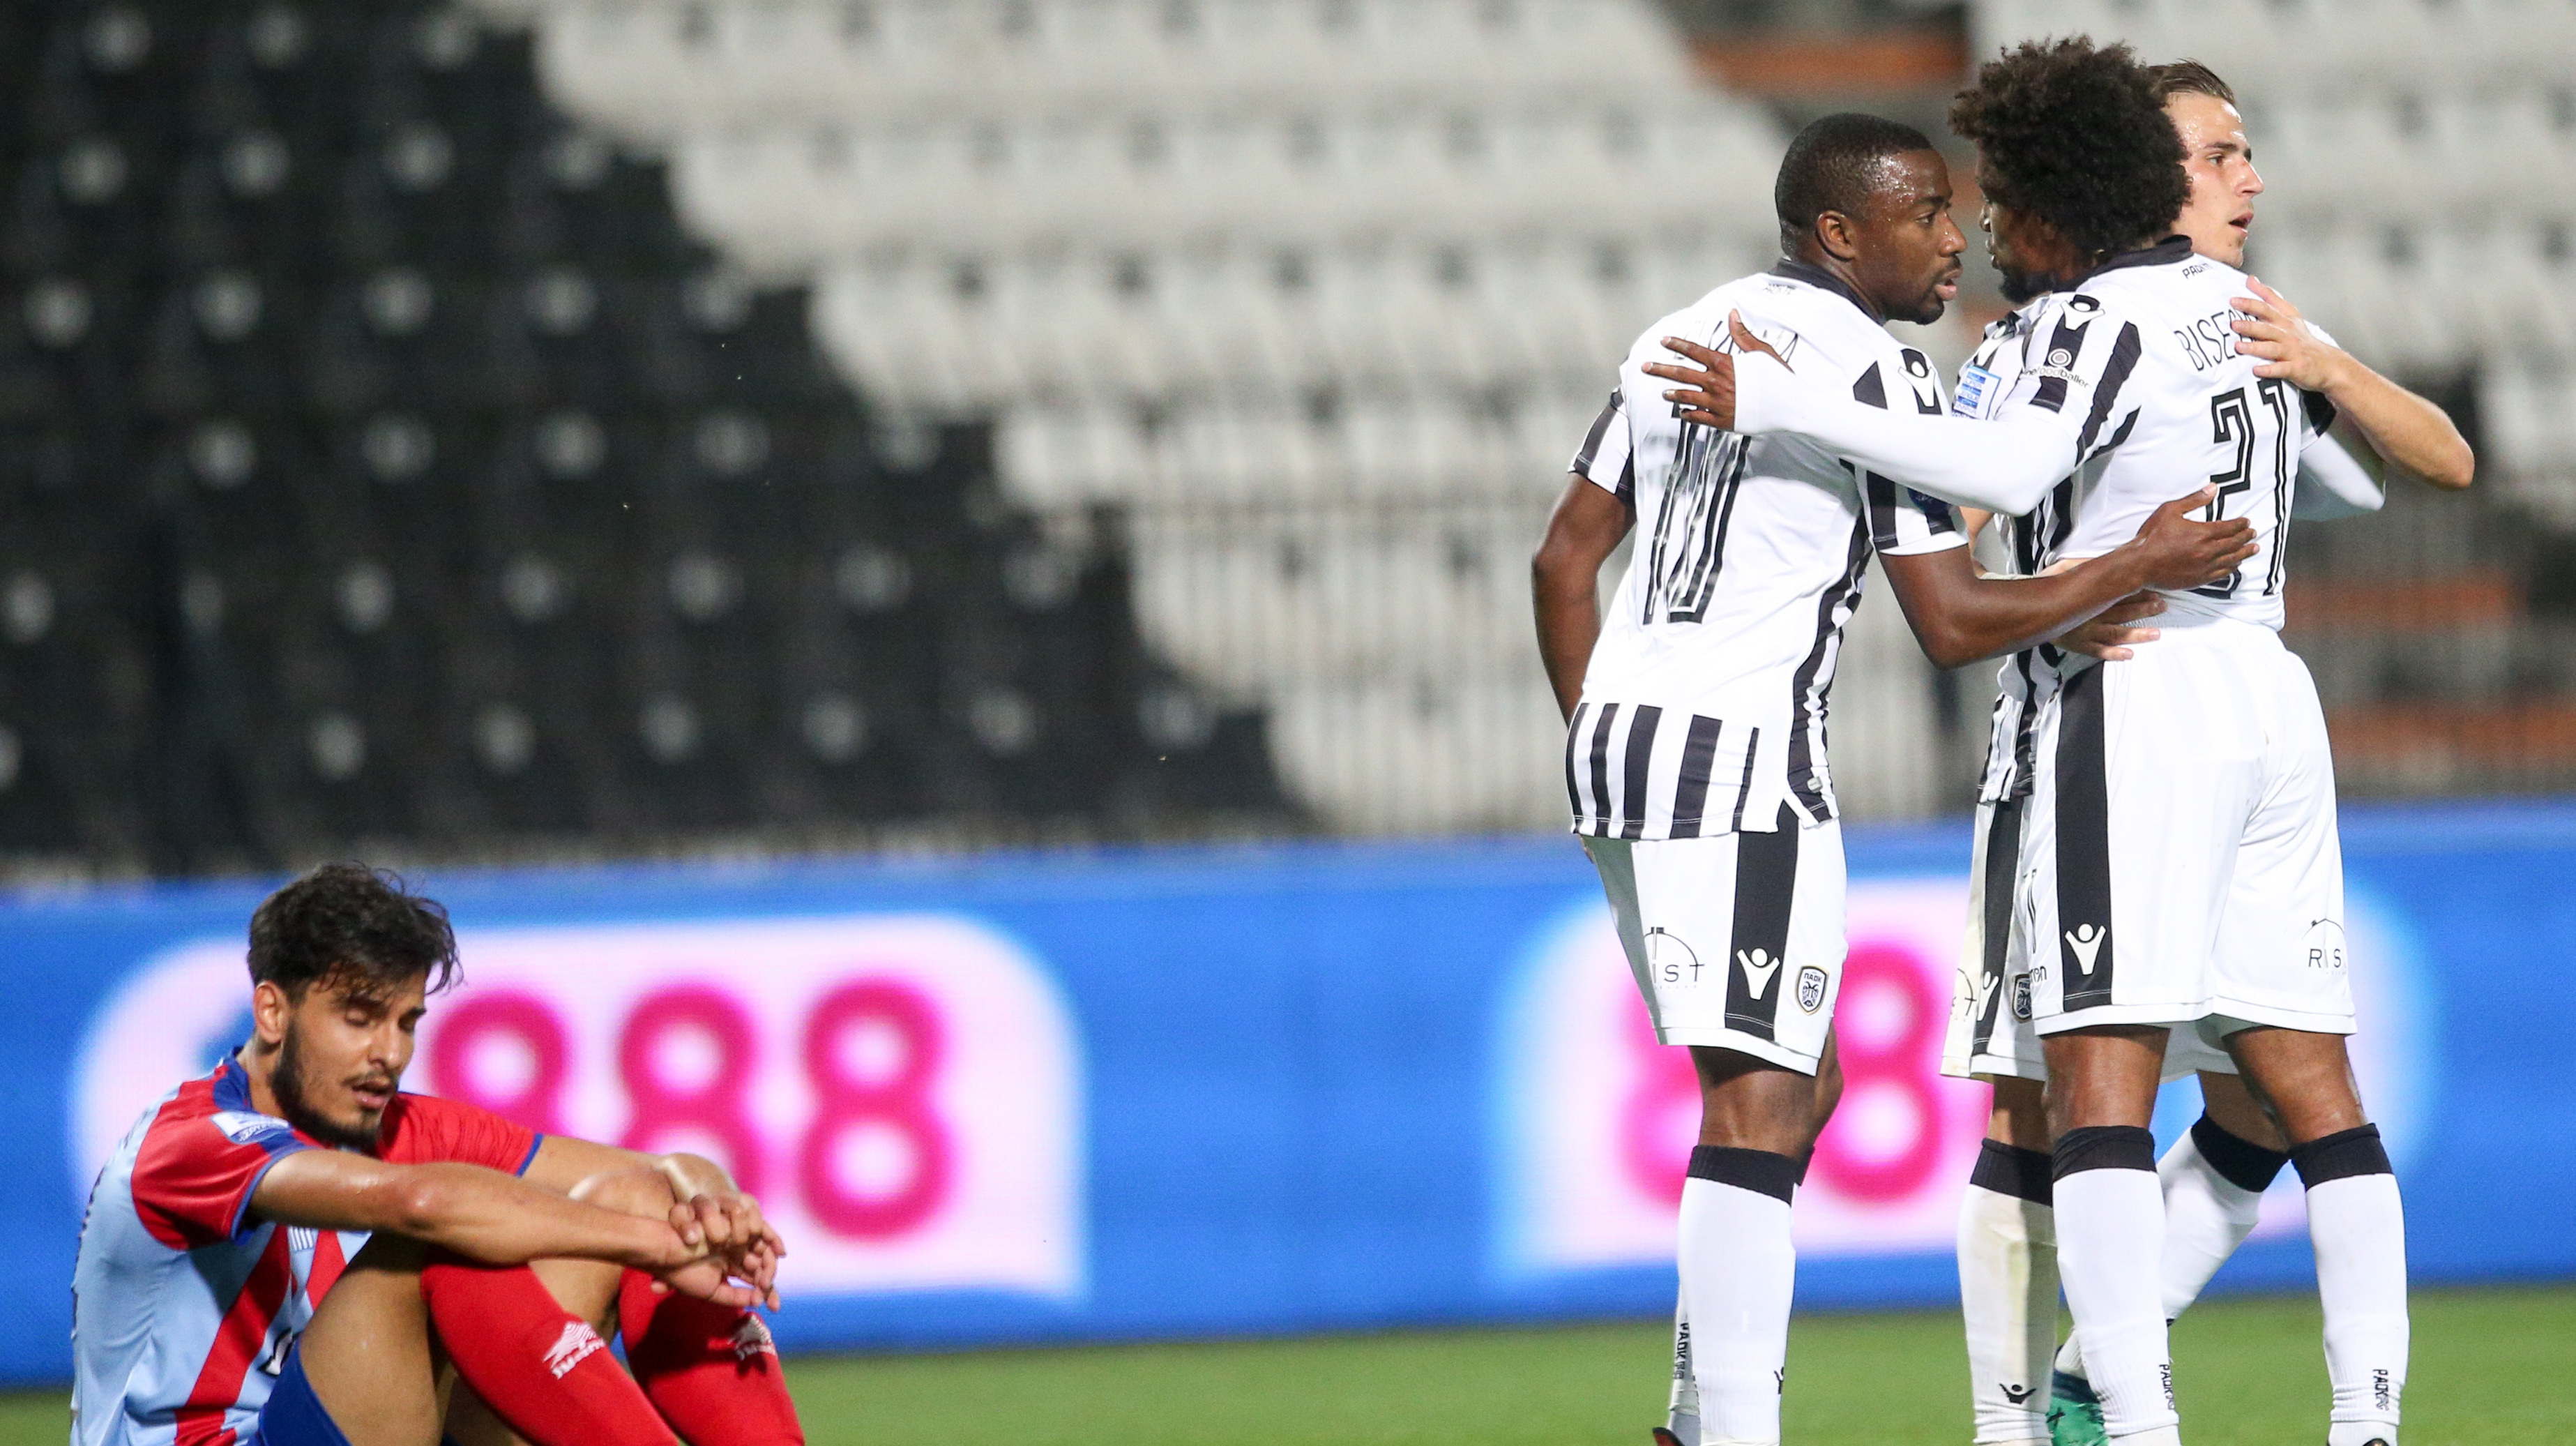 PAOK – Panionios: Highlights